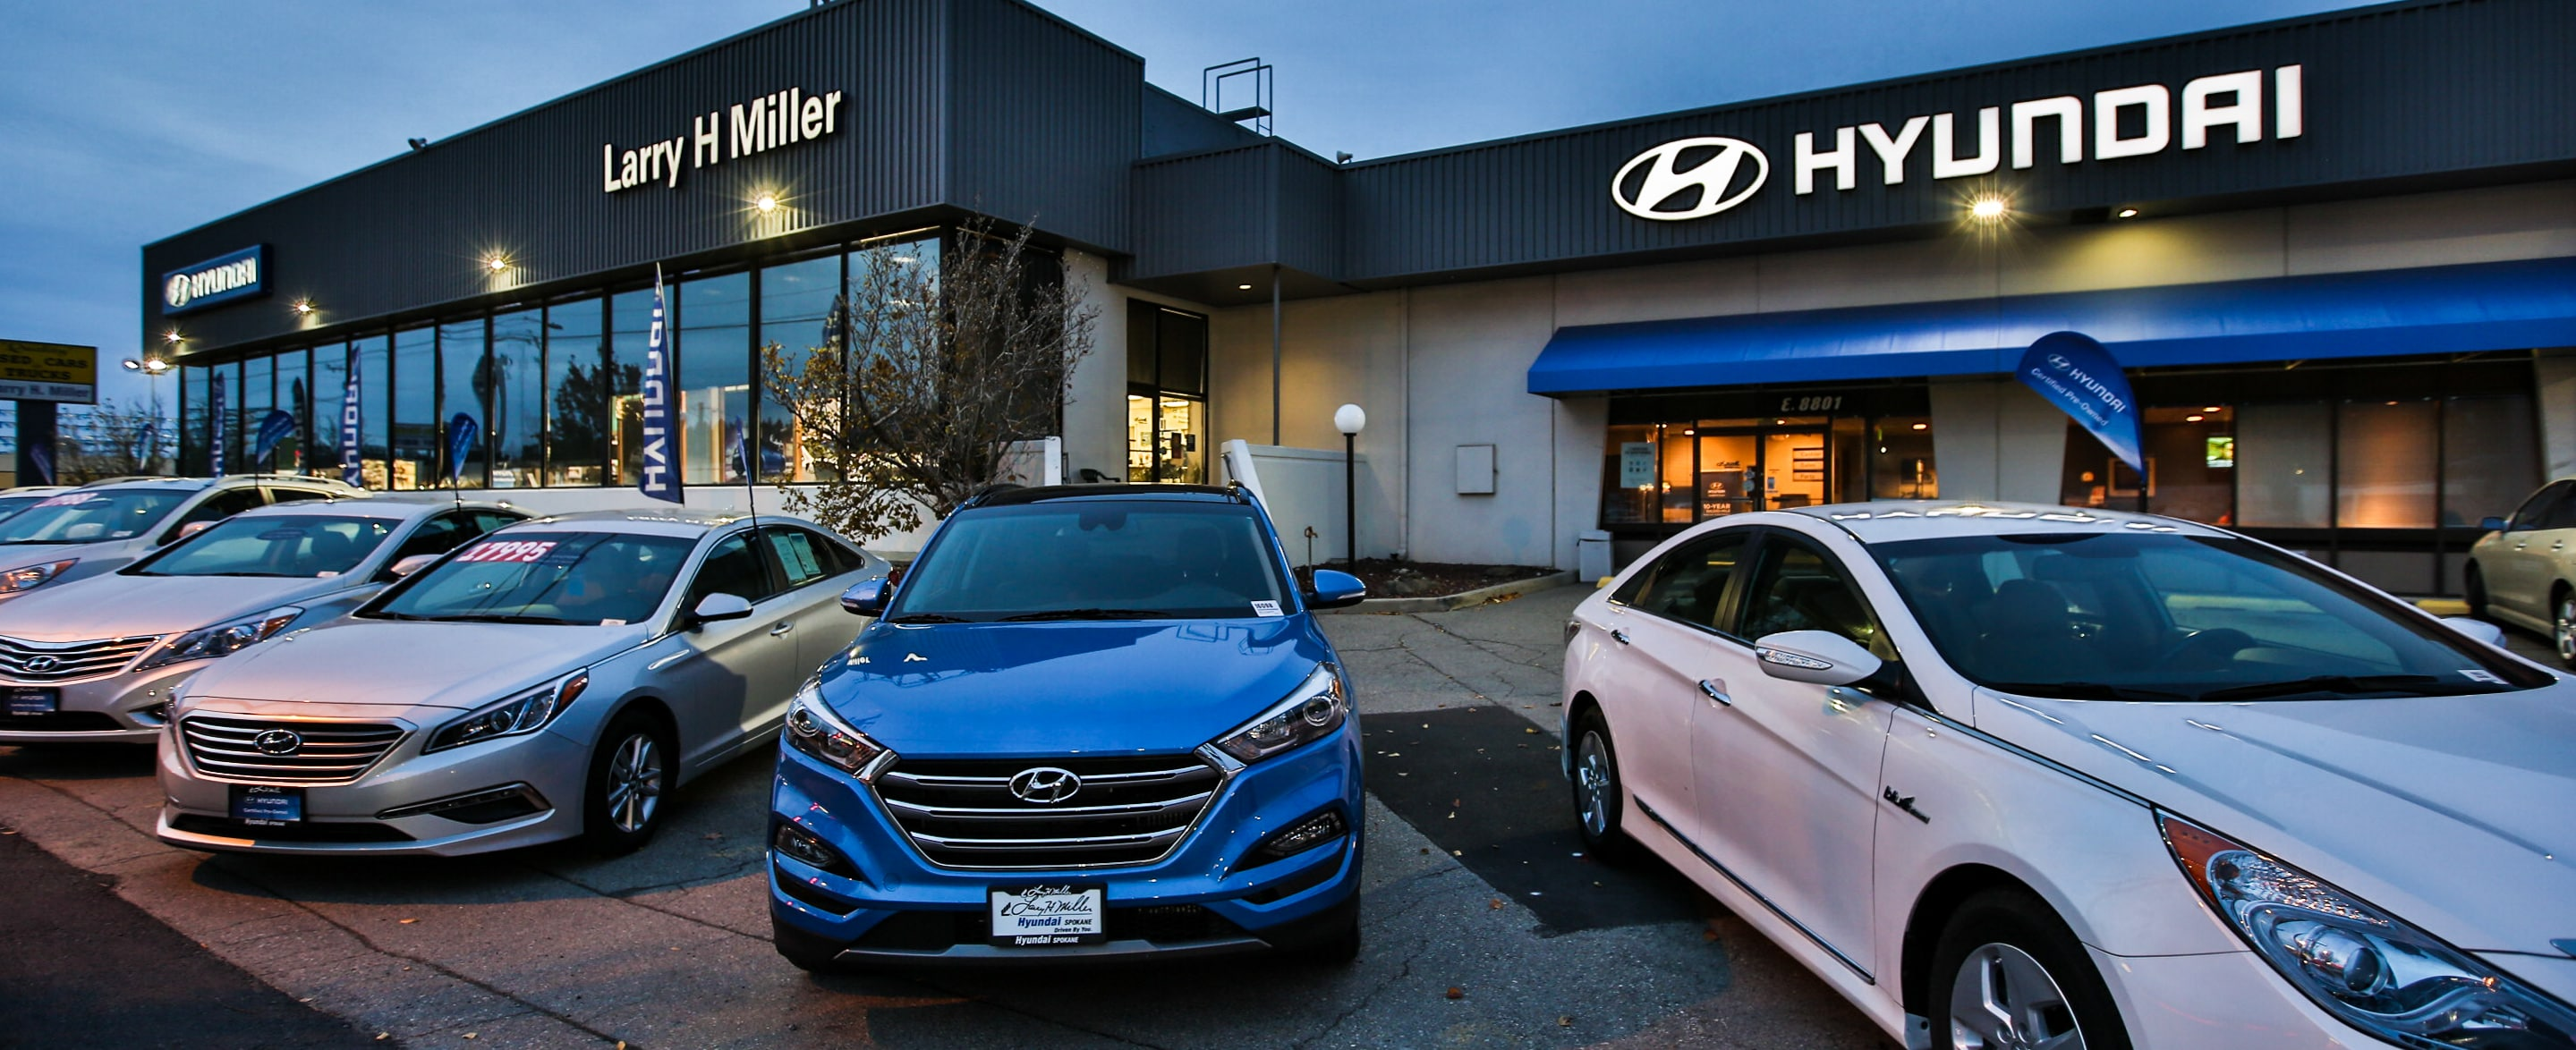 about larry h miller hyundai spokane new hyundai and used car dealer serving spokane. Black Bedroom Furniture Sets. Home Design Ideas